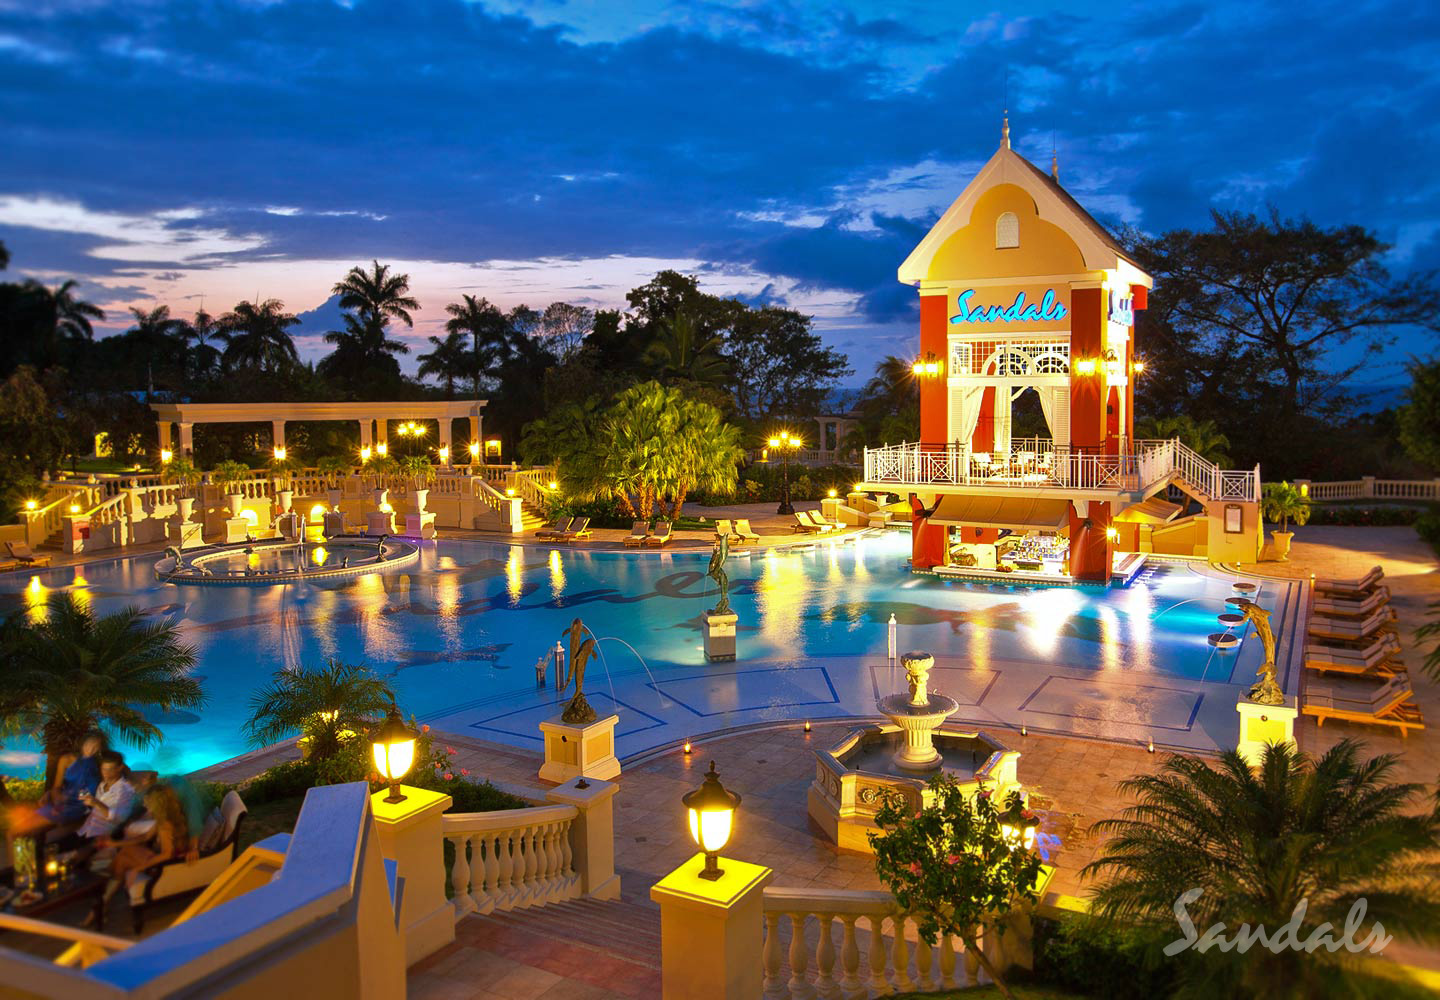 Travel Agency All-Inclusive Resort Sandals Ochi 060